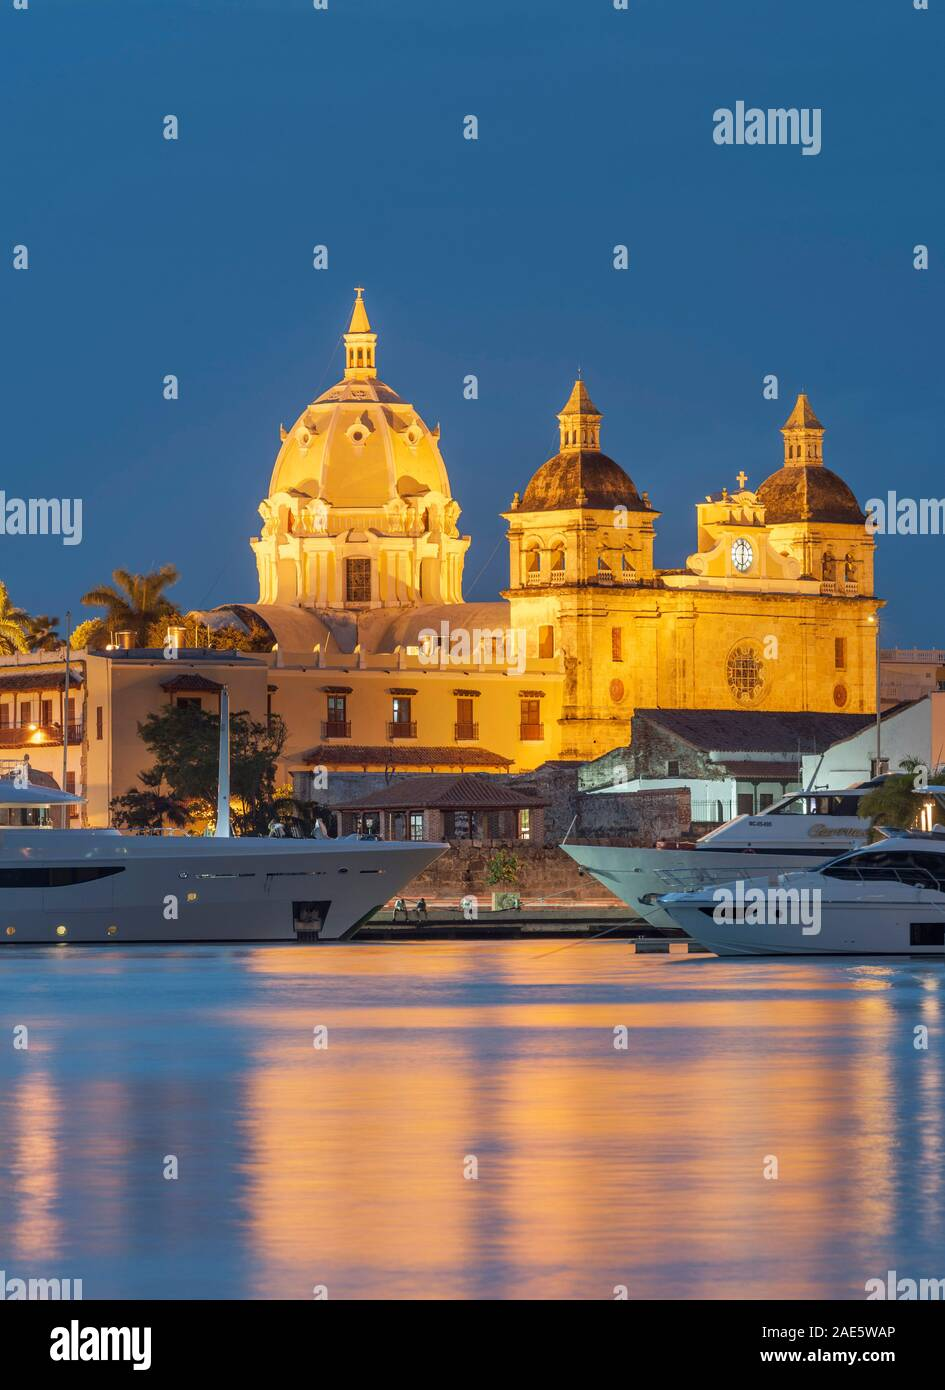 Dusk view of boats moored alongside the historic buildings of the walled old city of Cartagena in Colombia. Stock Photo